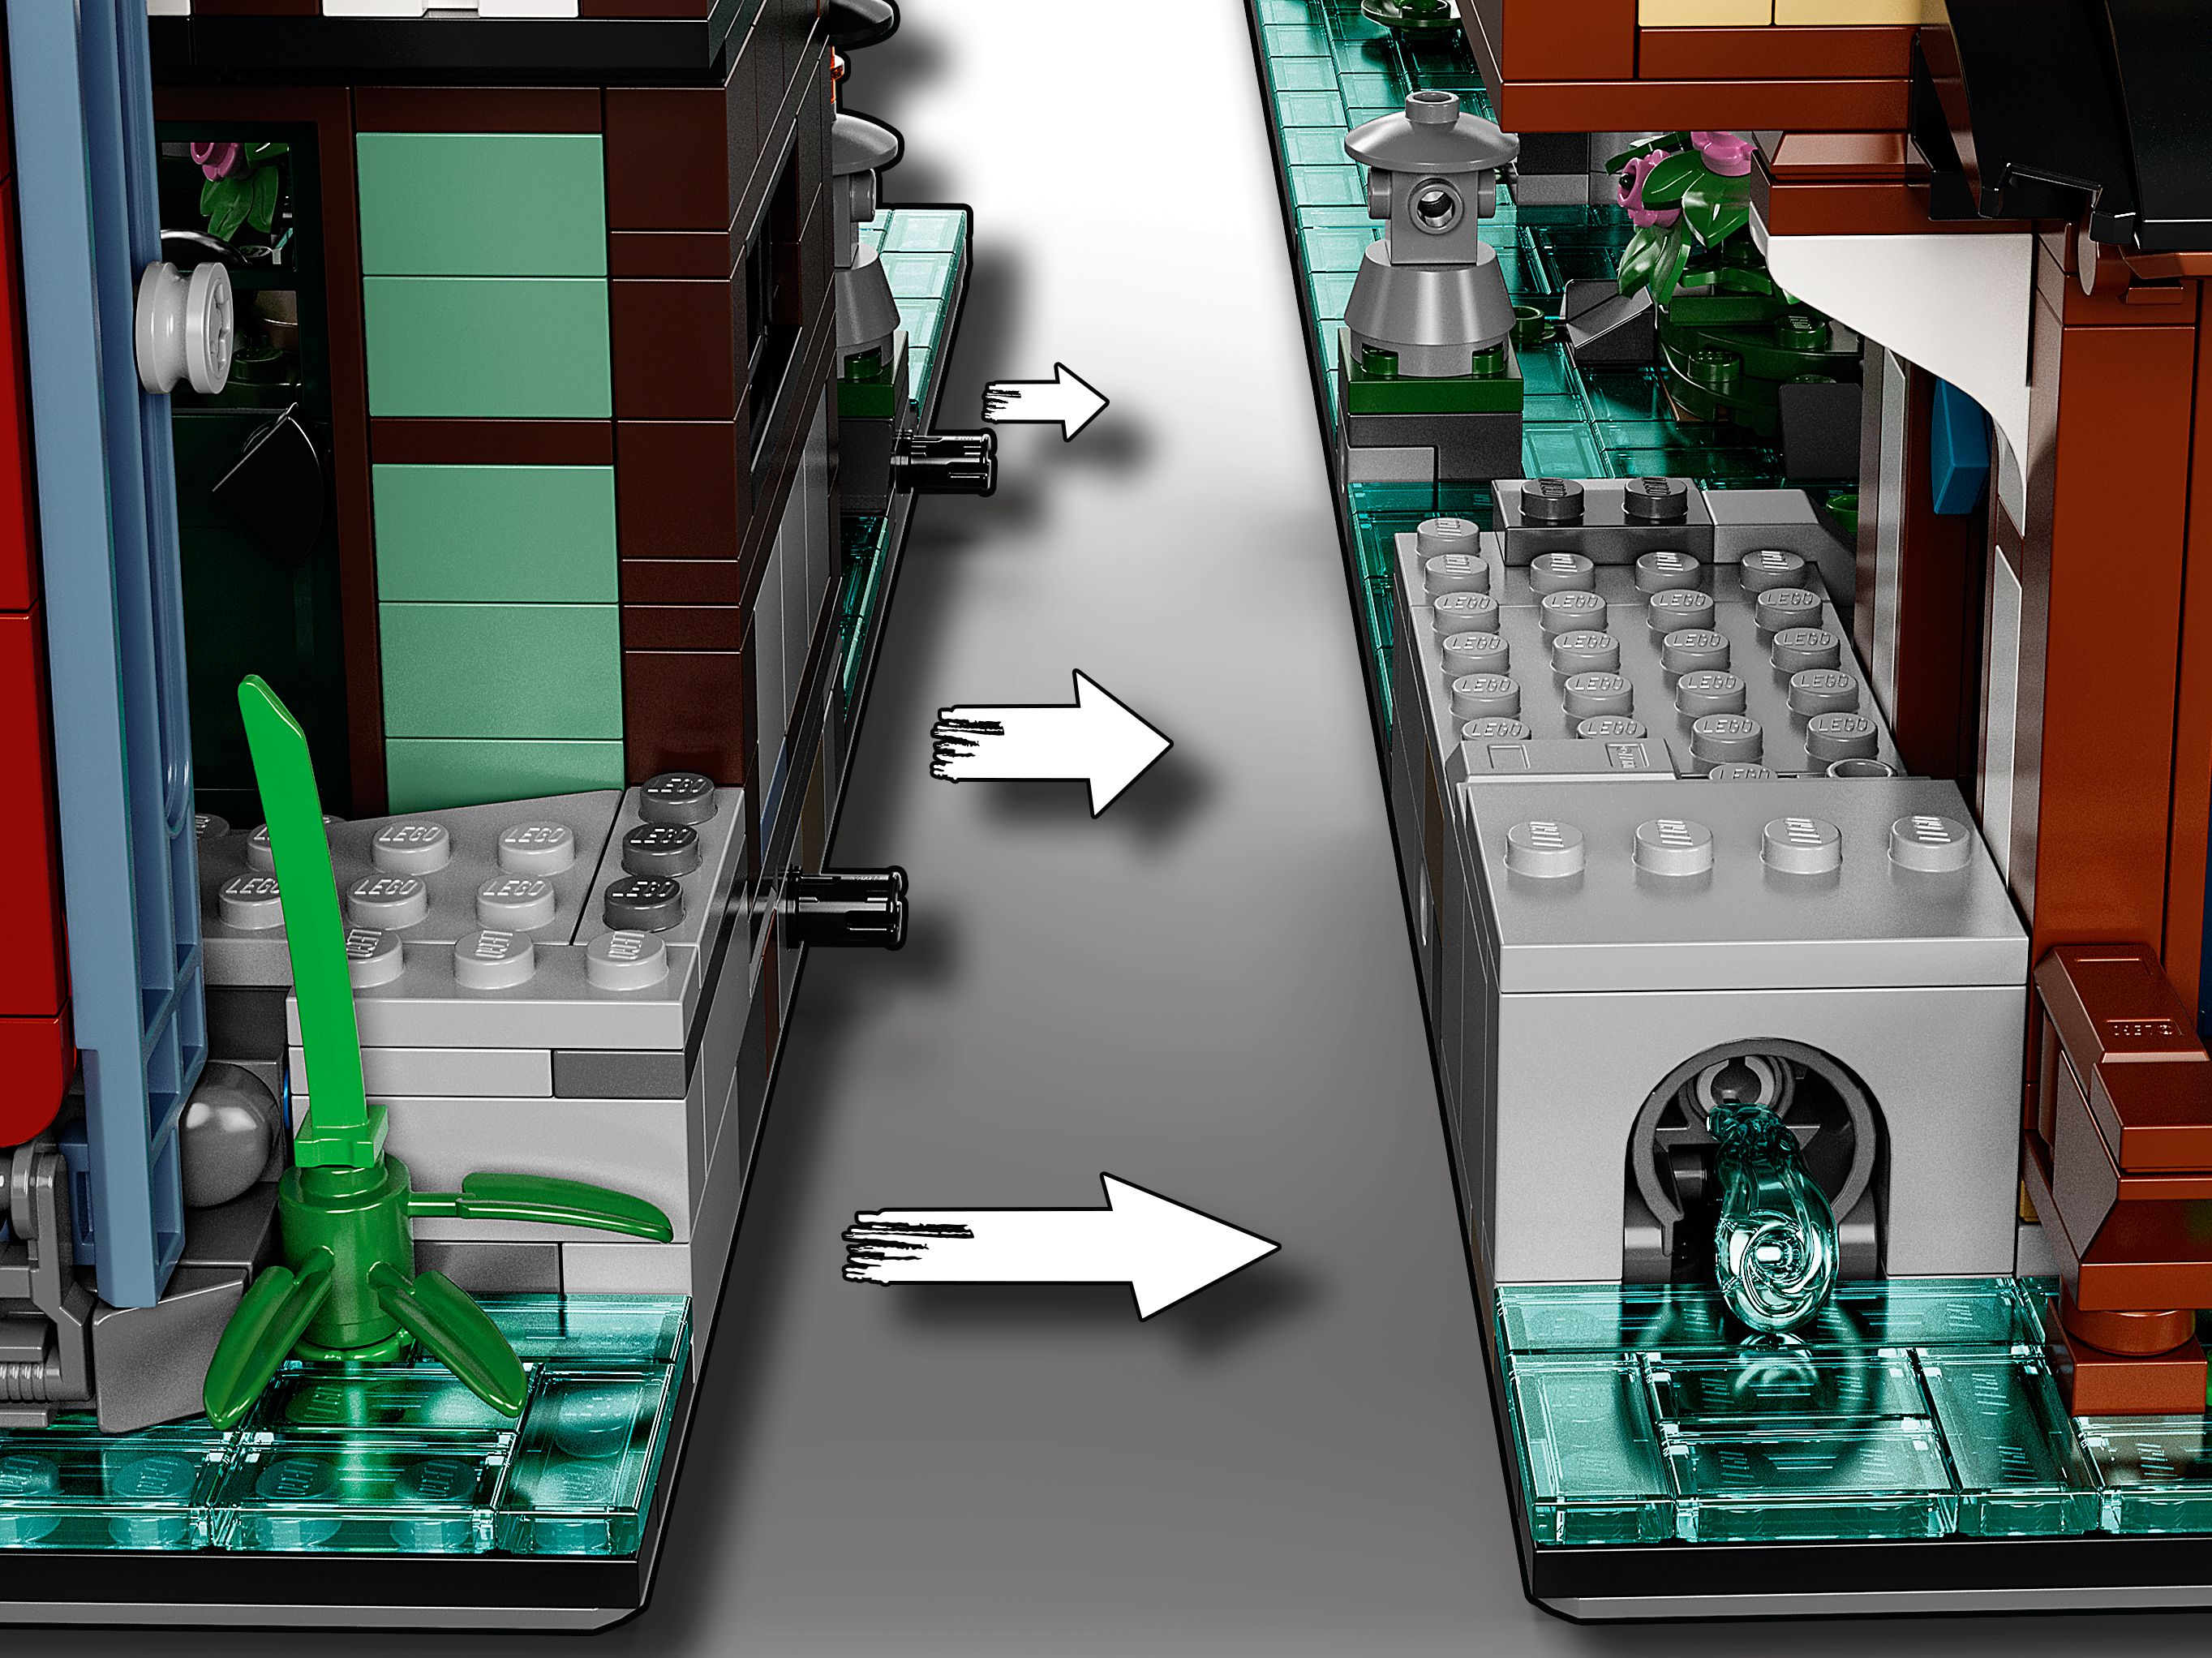 LEGO The LEGO Ninjago Movie 71741 Die Gärten von Ninjago City LEGO_71741_alt14.jpg